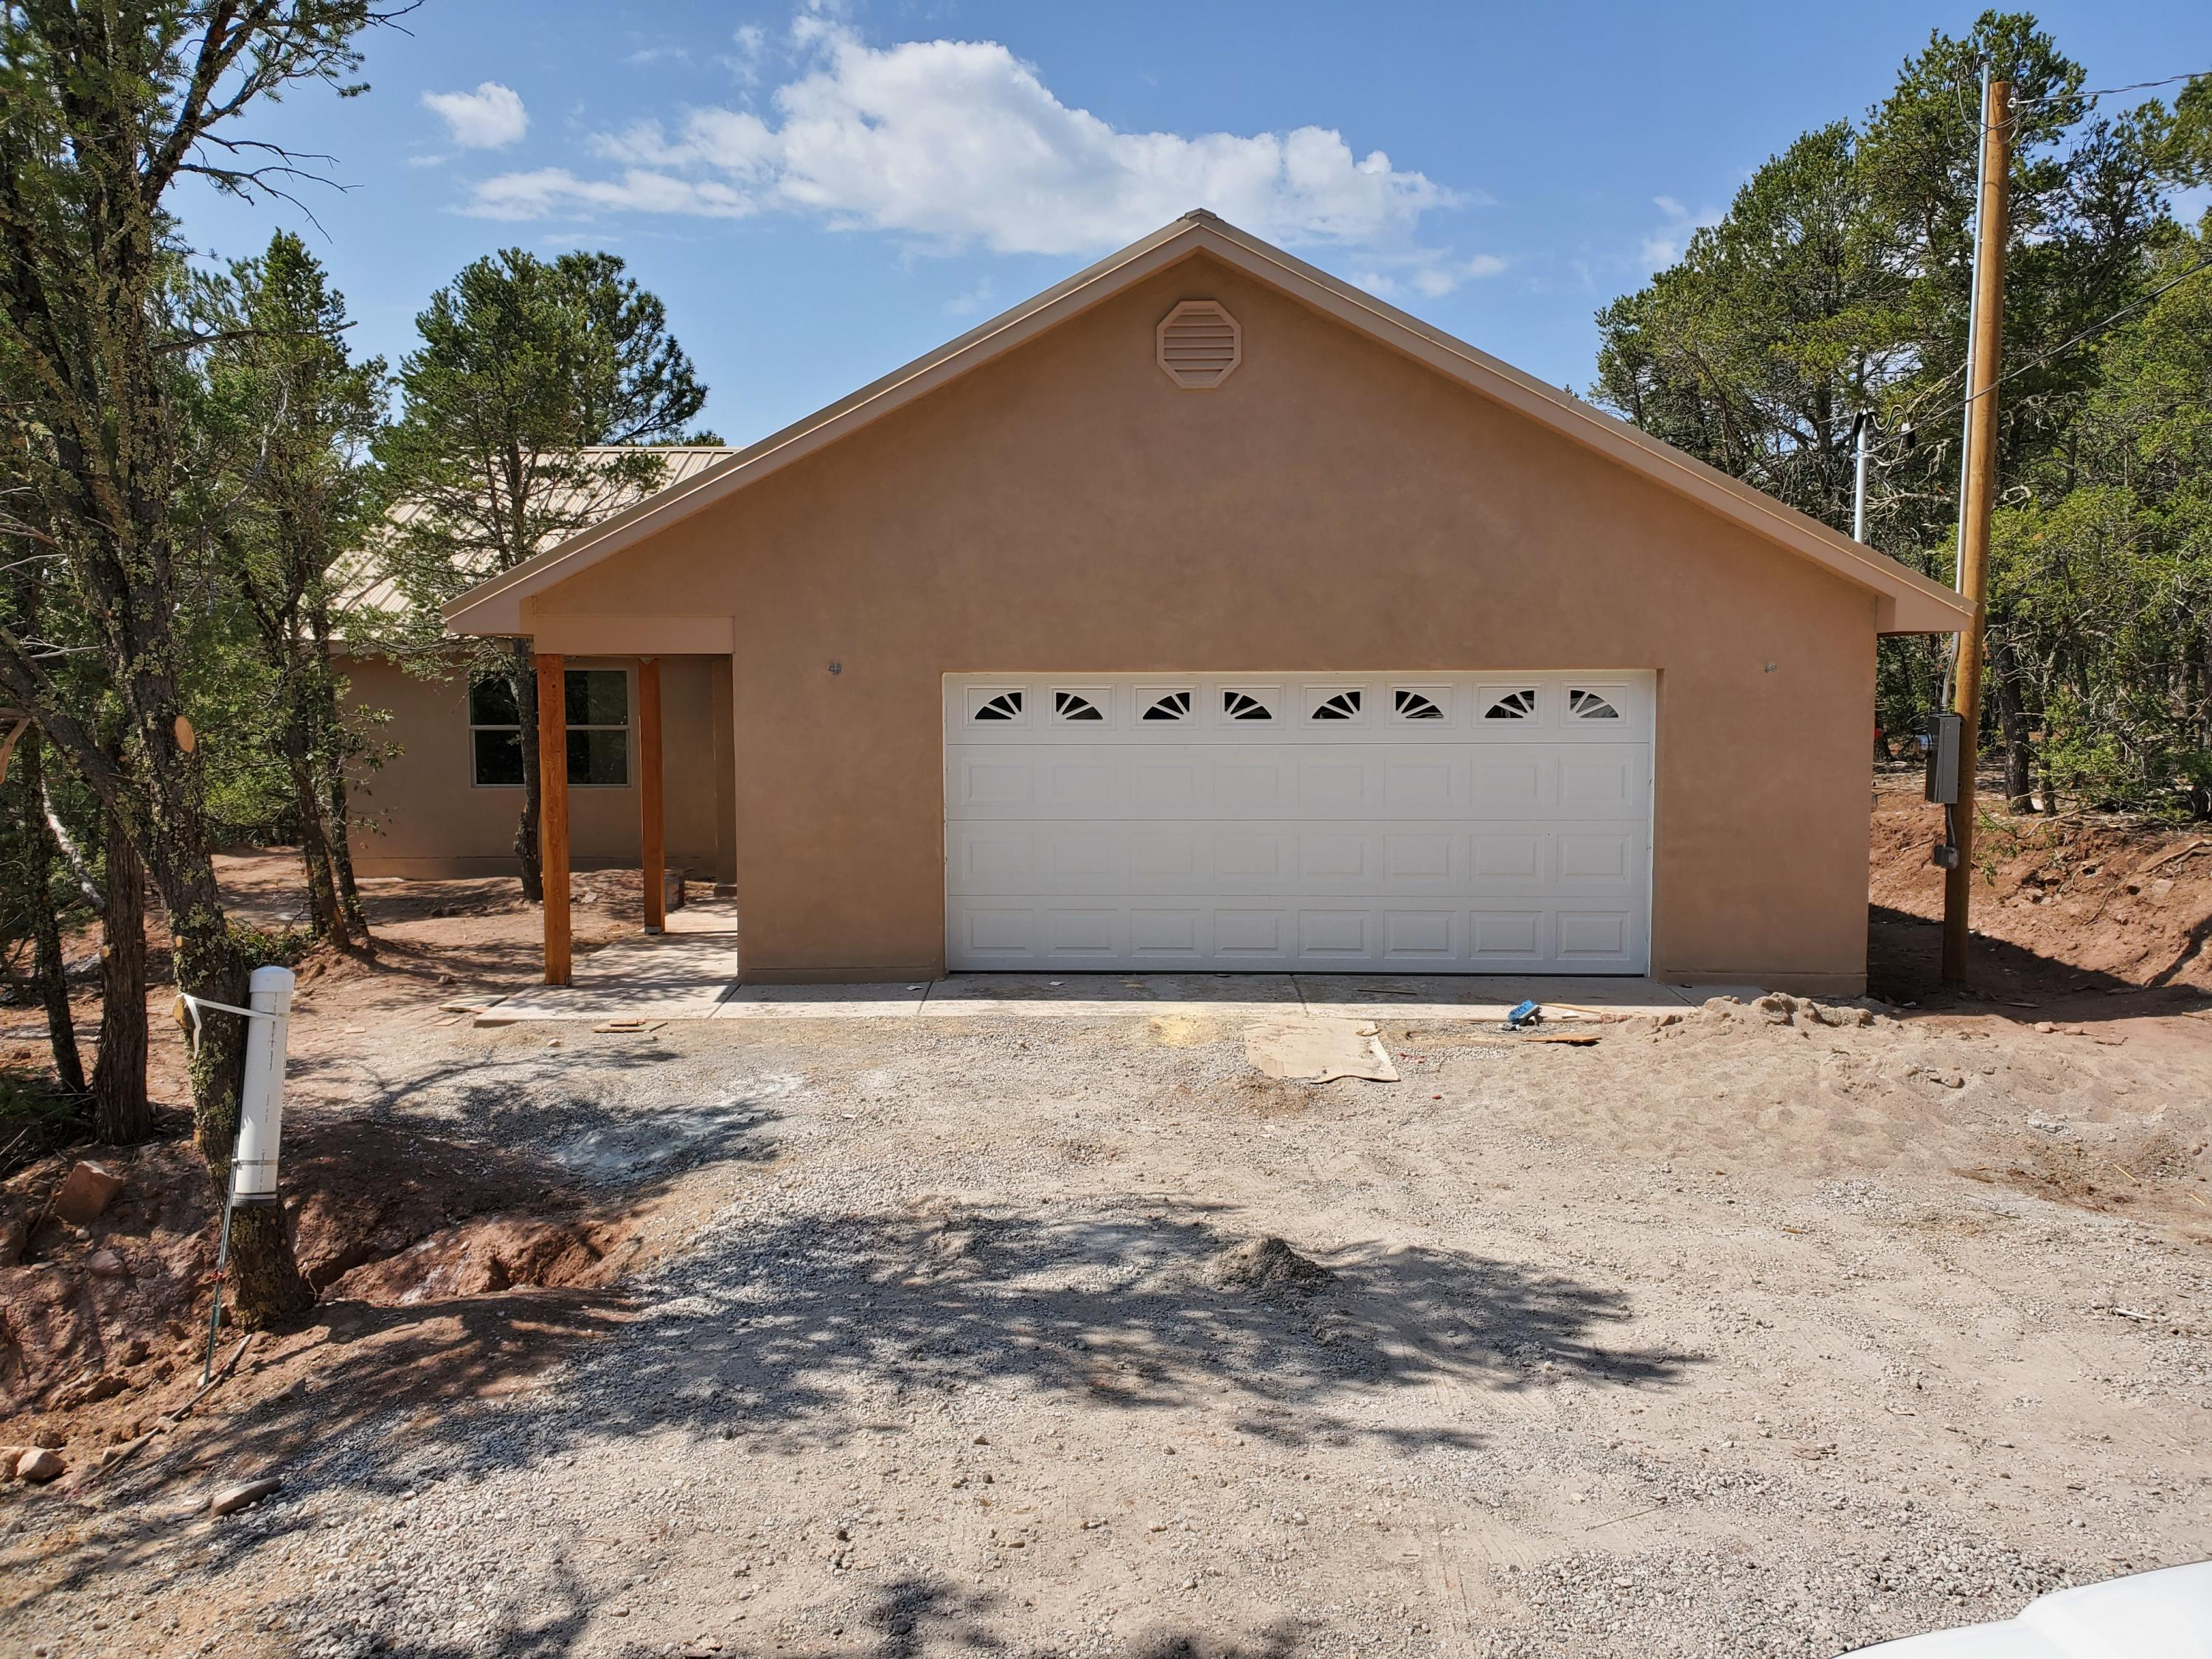 Under construction! A nice home with 1,551 sq. ft., 2 bath, 2 car garage nestled on a gorgeous lot with trees, trees and trees!  Located in a small gated compound with only 2 other neighbors.  Kitchen has eat at bar, granite countertops and microwave over stove. Private well, metal roof, pellet fireplace, central heat, refrigerated cooling, covered patio, skylights. Master has dual sinks, shower and a walk in closet.